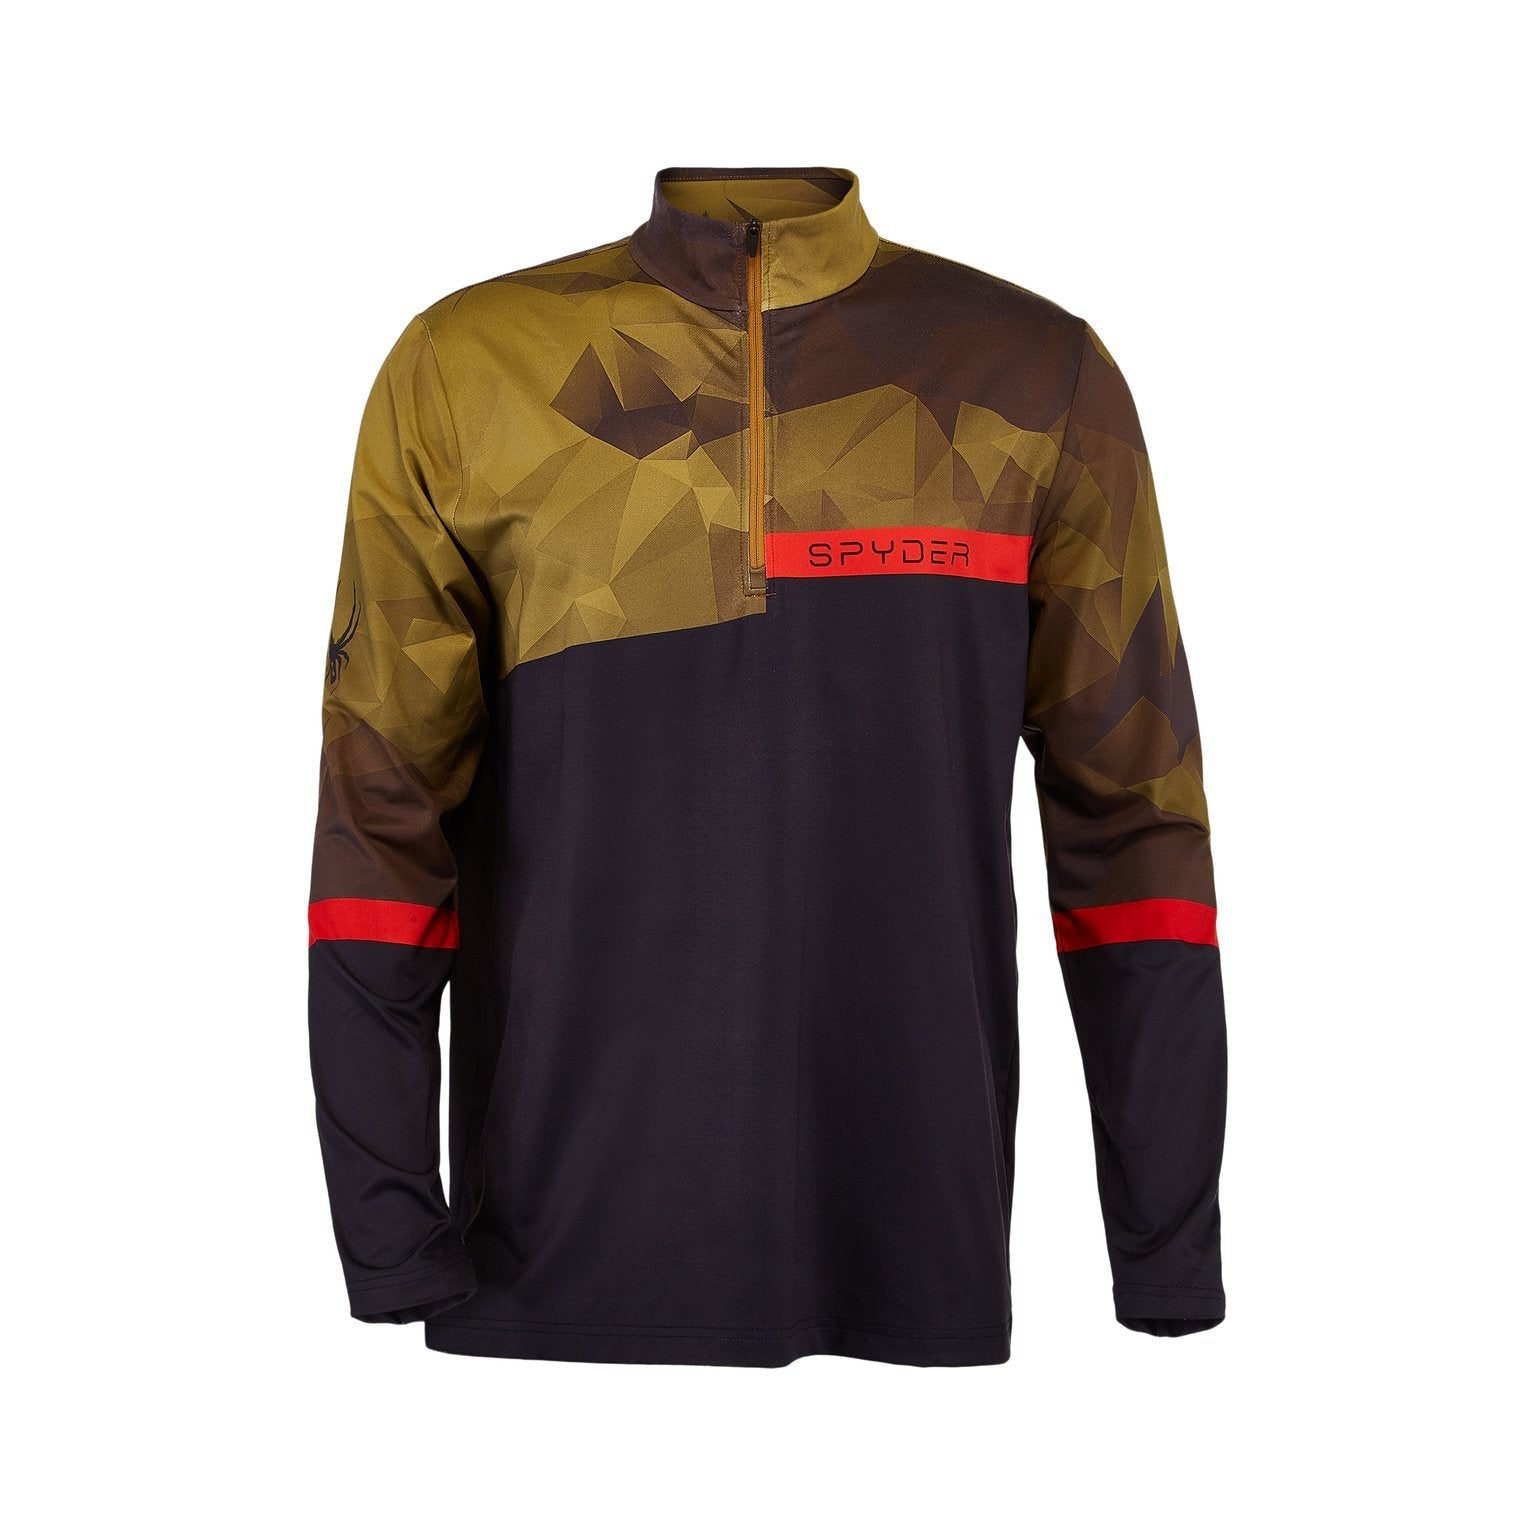 Spyder 2021 Men's PARAMOUNT Zip T-Neck